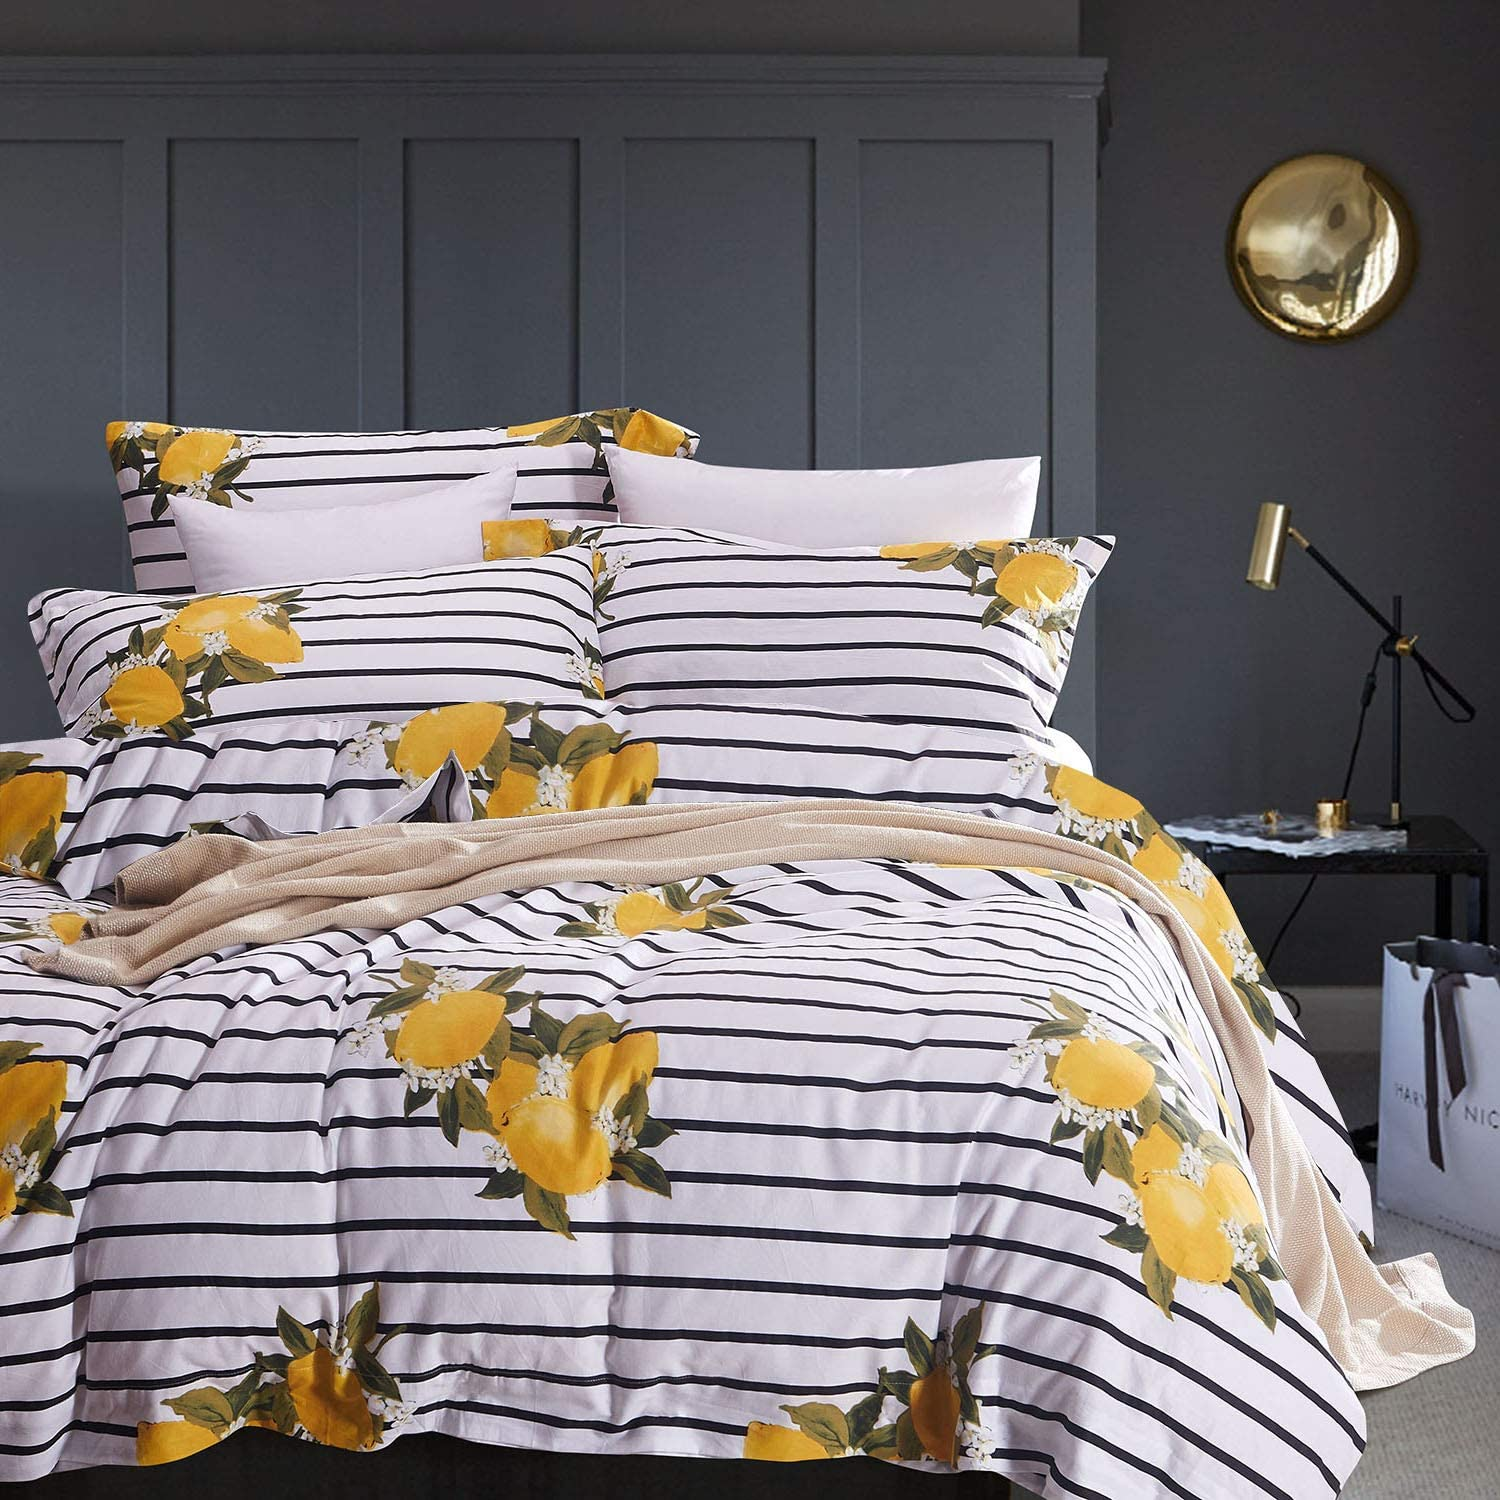 Wake In Cloud - Striped Duvet Cover Set, 100% Cotton Bedding, Yellow Lemon Pattern with Black and White Stripe Printed (3pcs, Full Size)